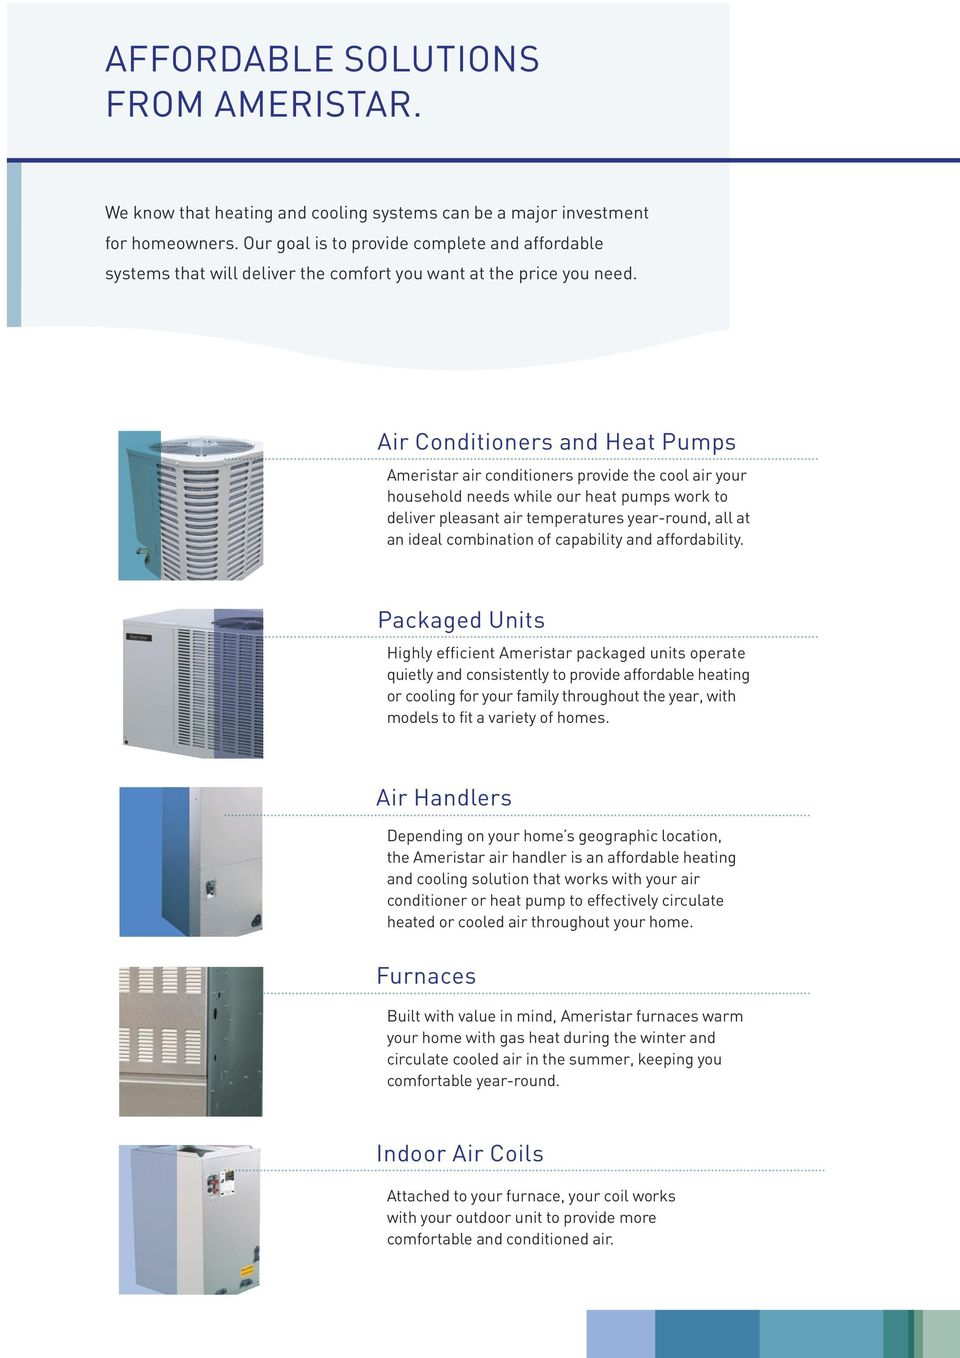 HEATING AND COOLING SYSTEMS THAT FIT COMFORTABLY WITHIN YOUR